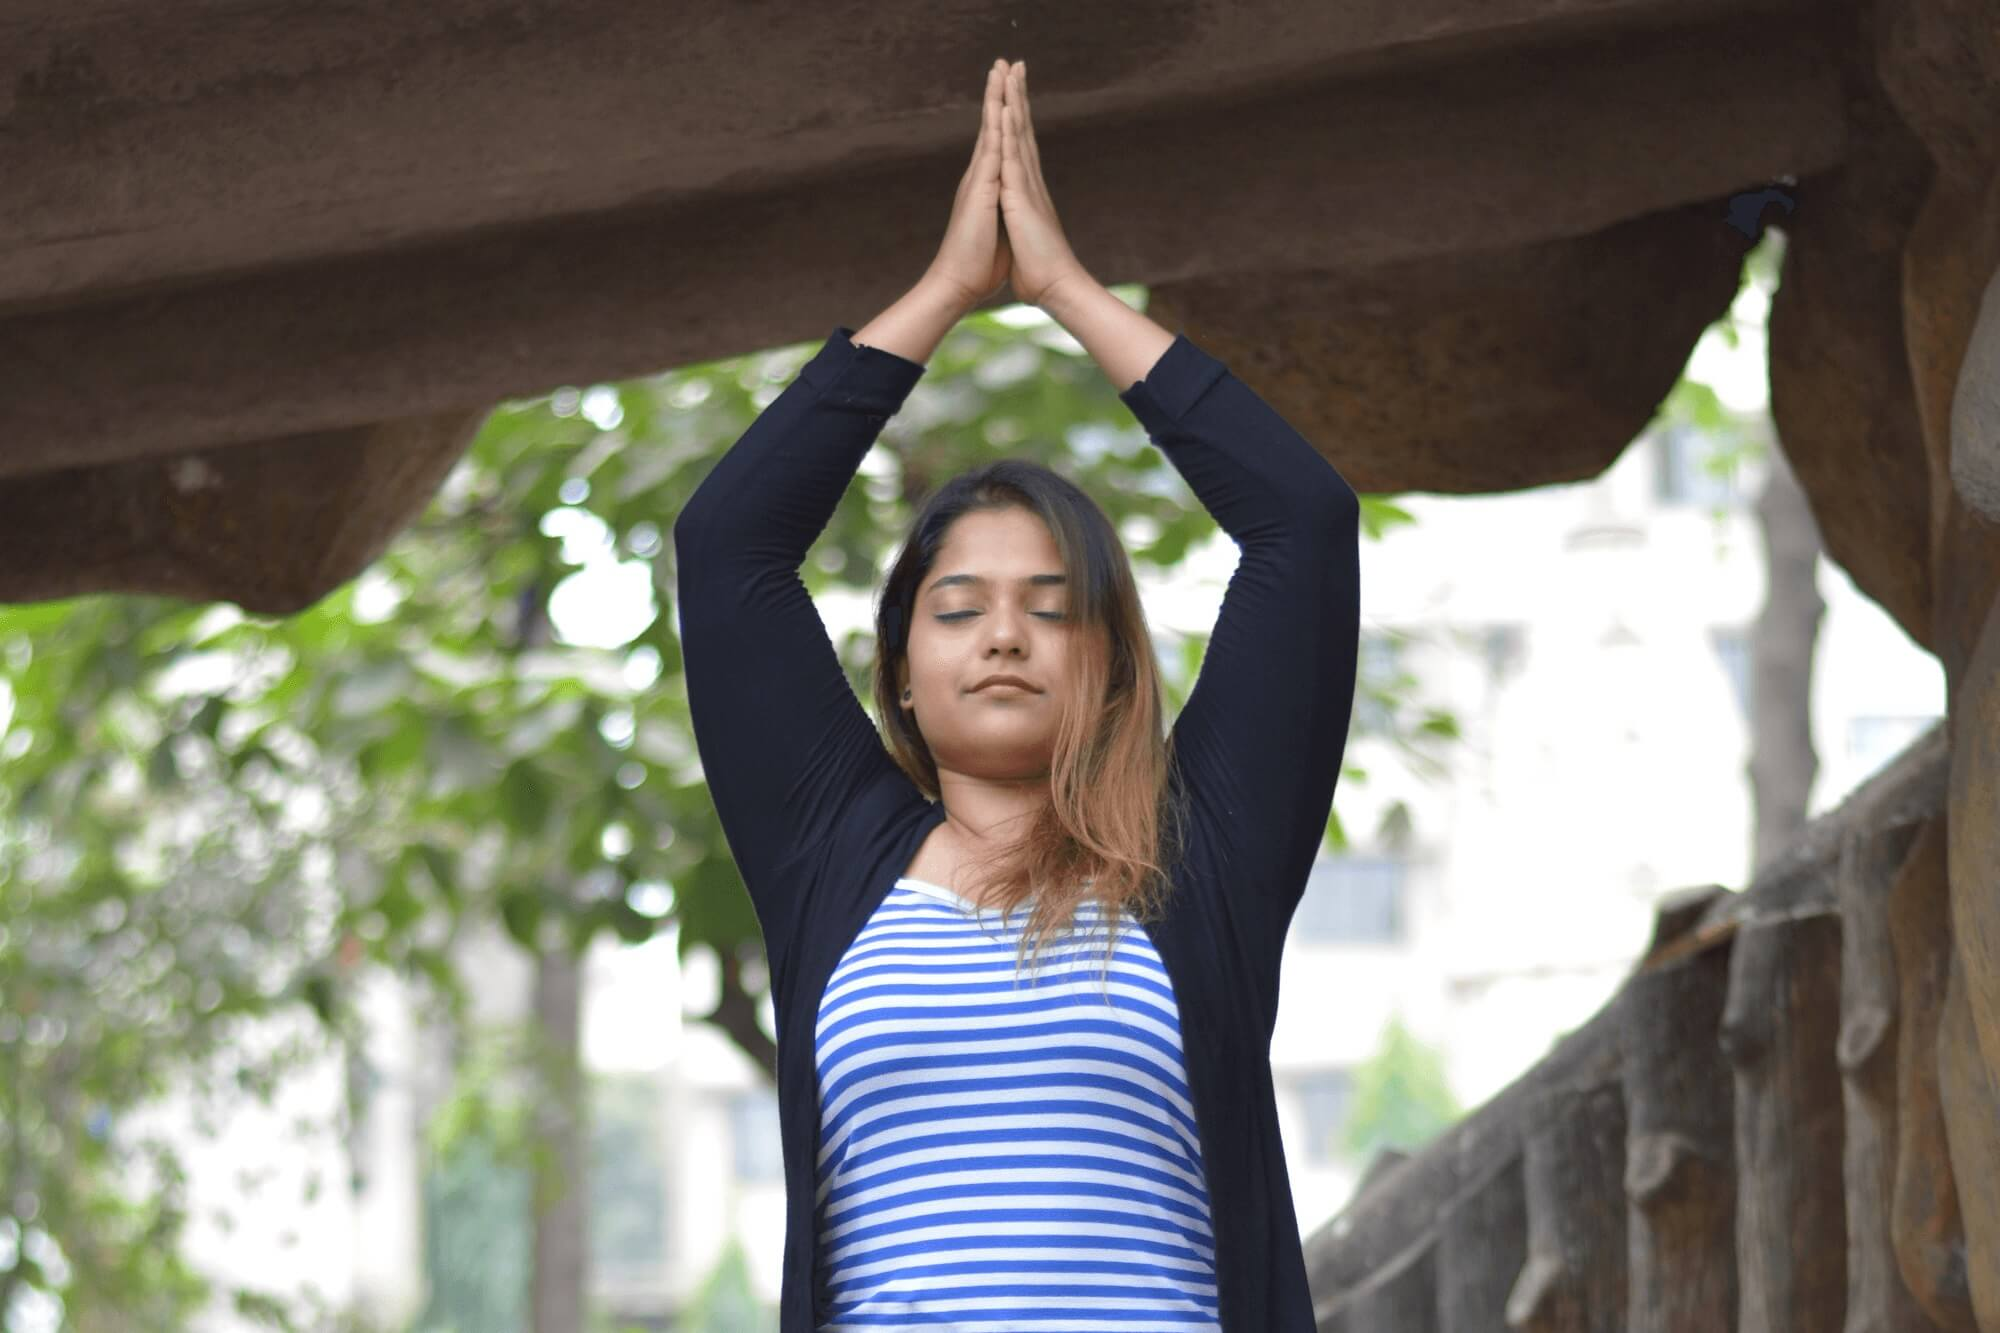 Aishwarya Deshpande stands with her palms closed and her arms in a triangle shape above her head with her eyes closed